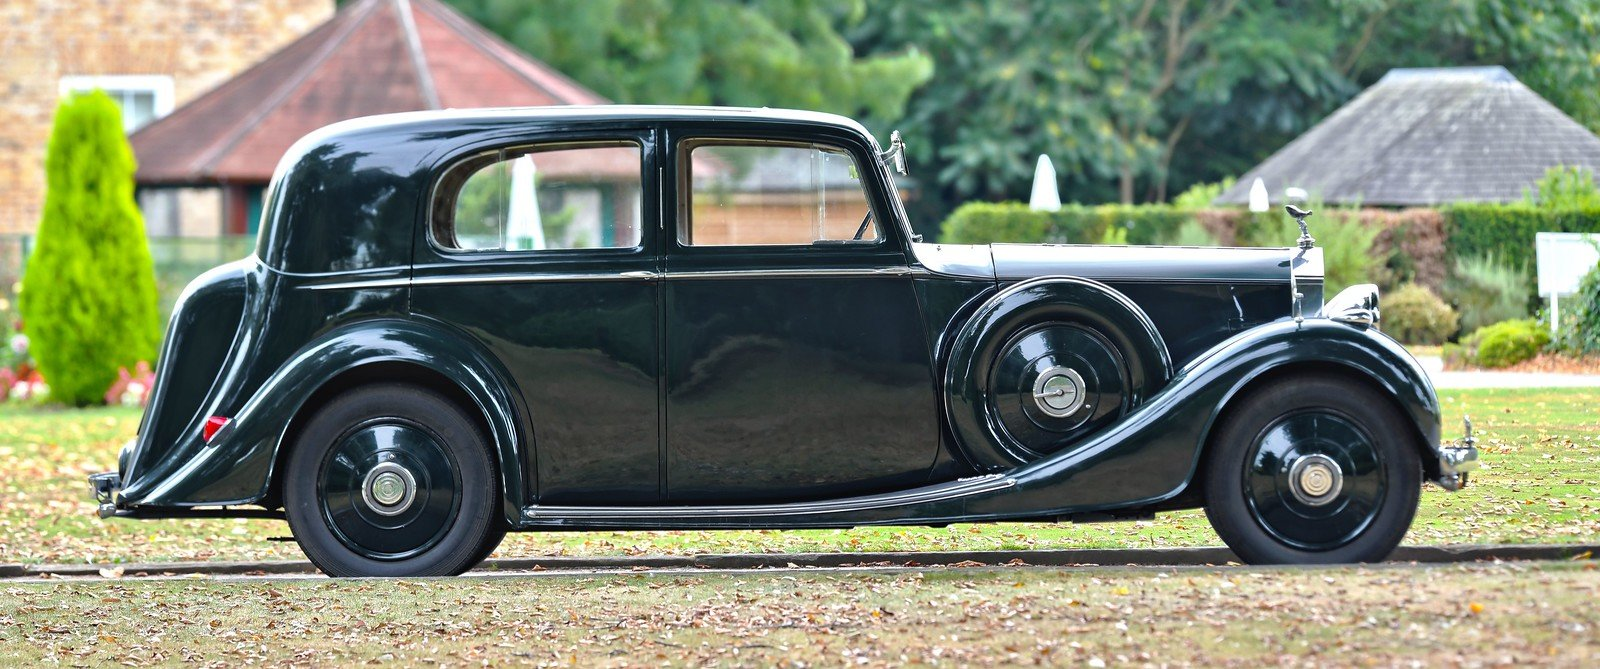 1938 Rolls Royce 25/30 H.J. Mulliner Saloon For Sale (picture 3 of 6)